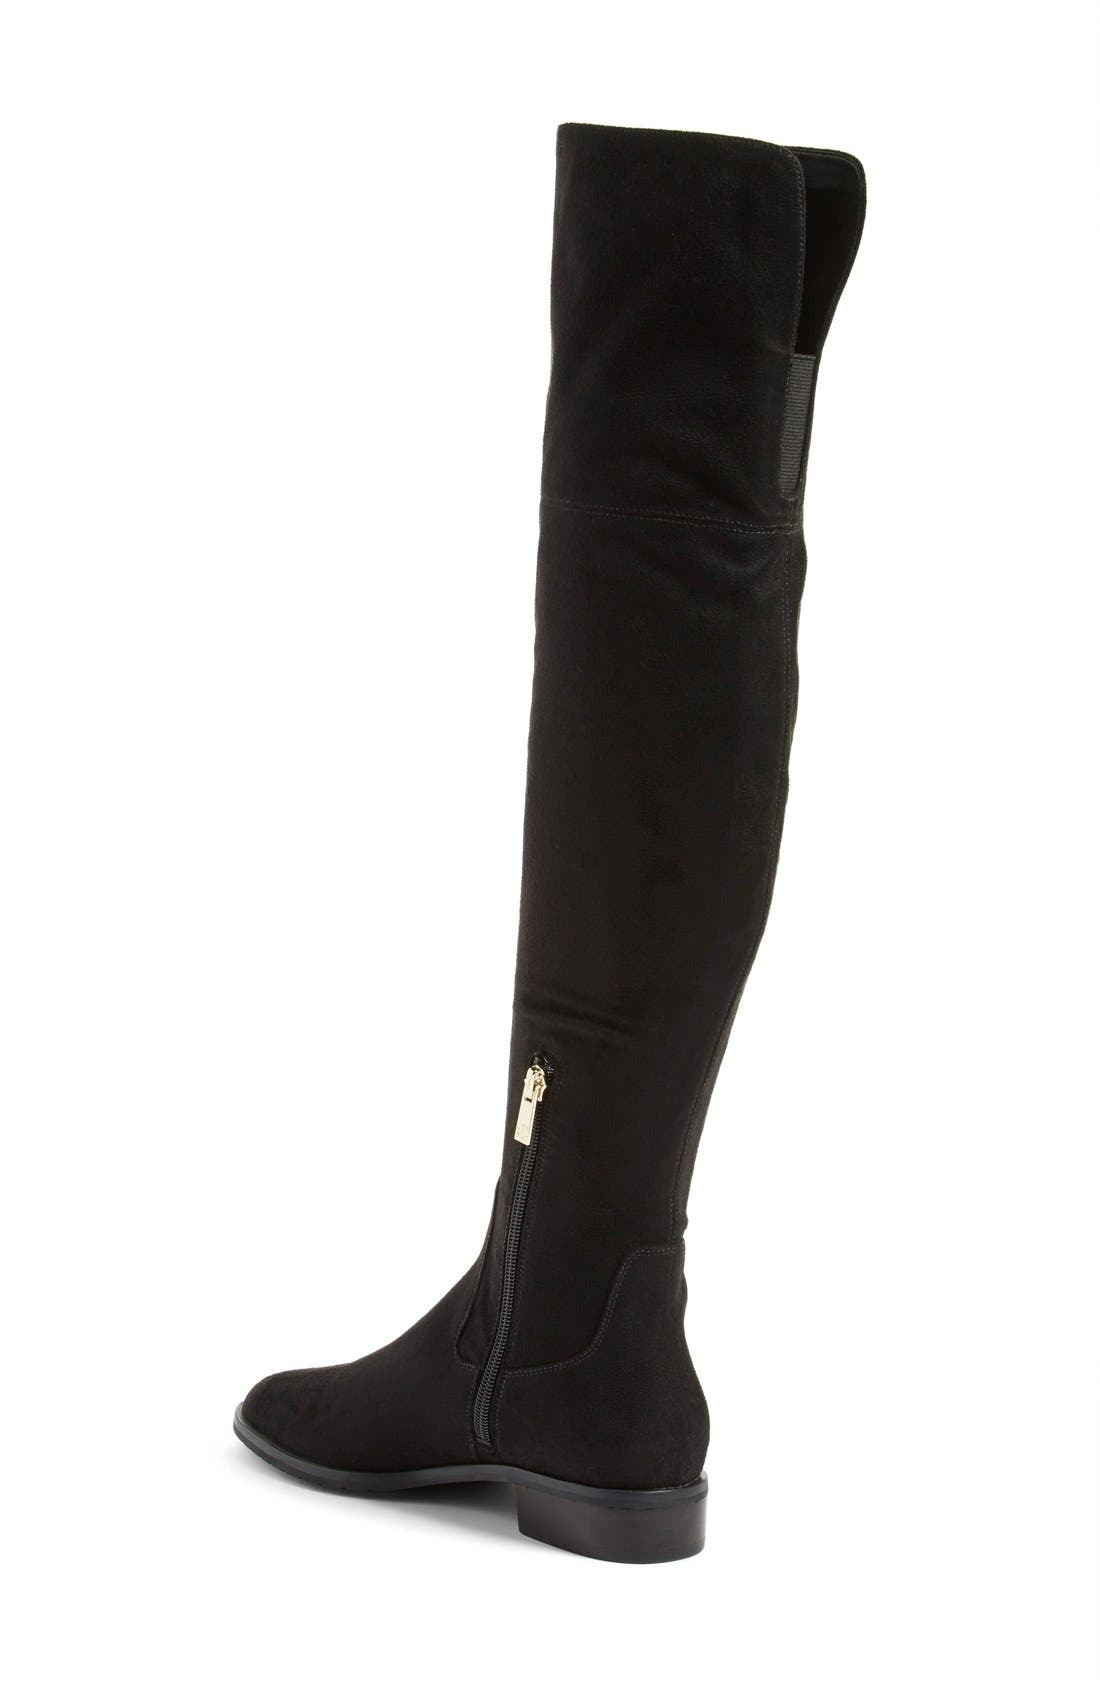 'Luci' Over the Knee Boot,                             Alternate thumbnail 3, color,                             001